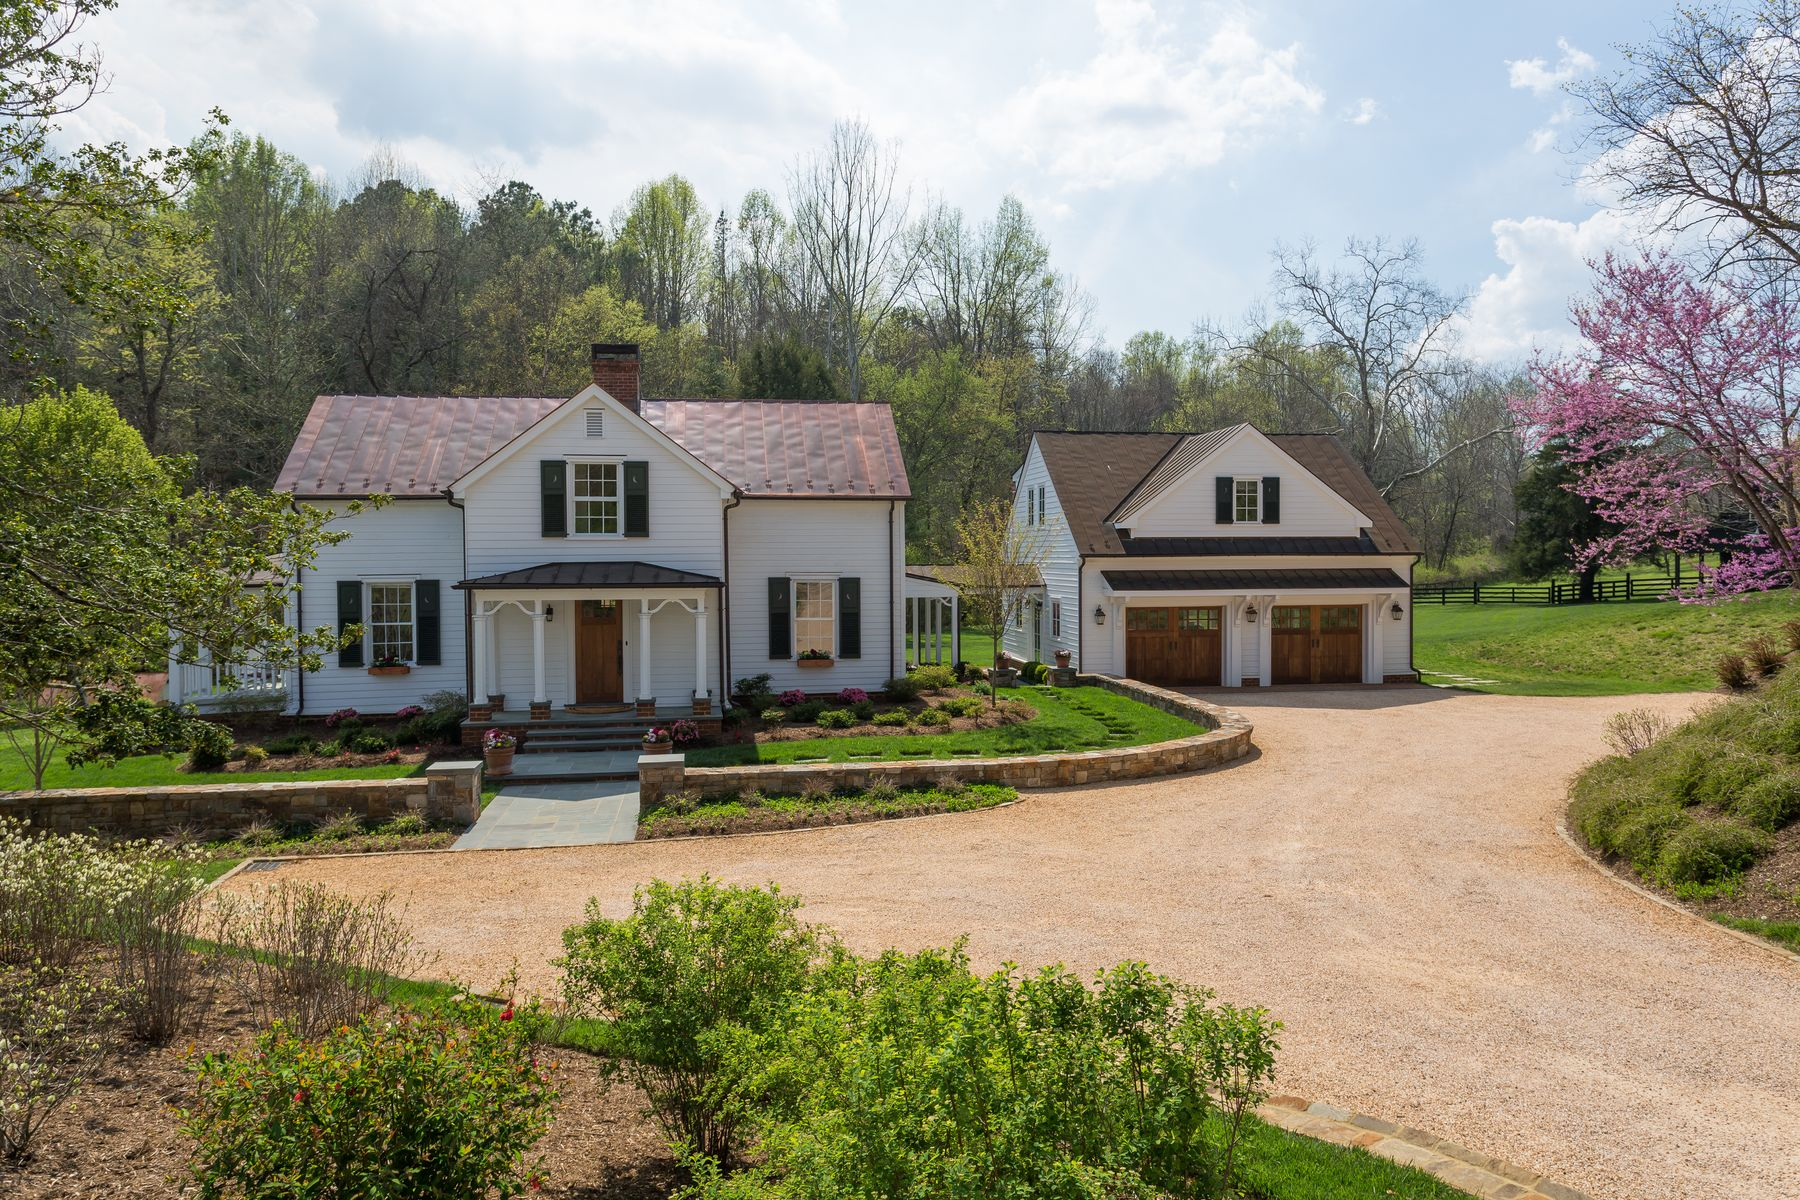 Single Family Home for Sale at 684 Ivy Depot Rd Charlottesville, Virginia 22903 United States